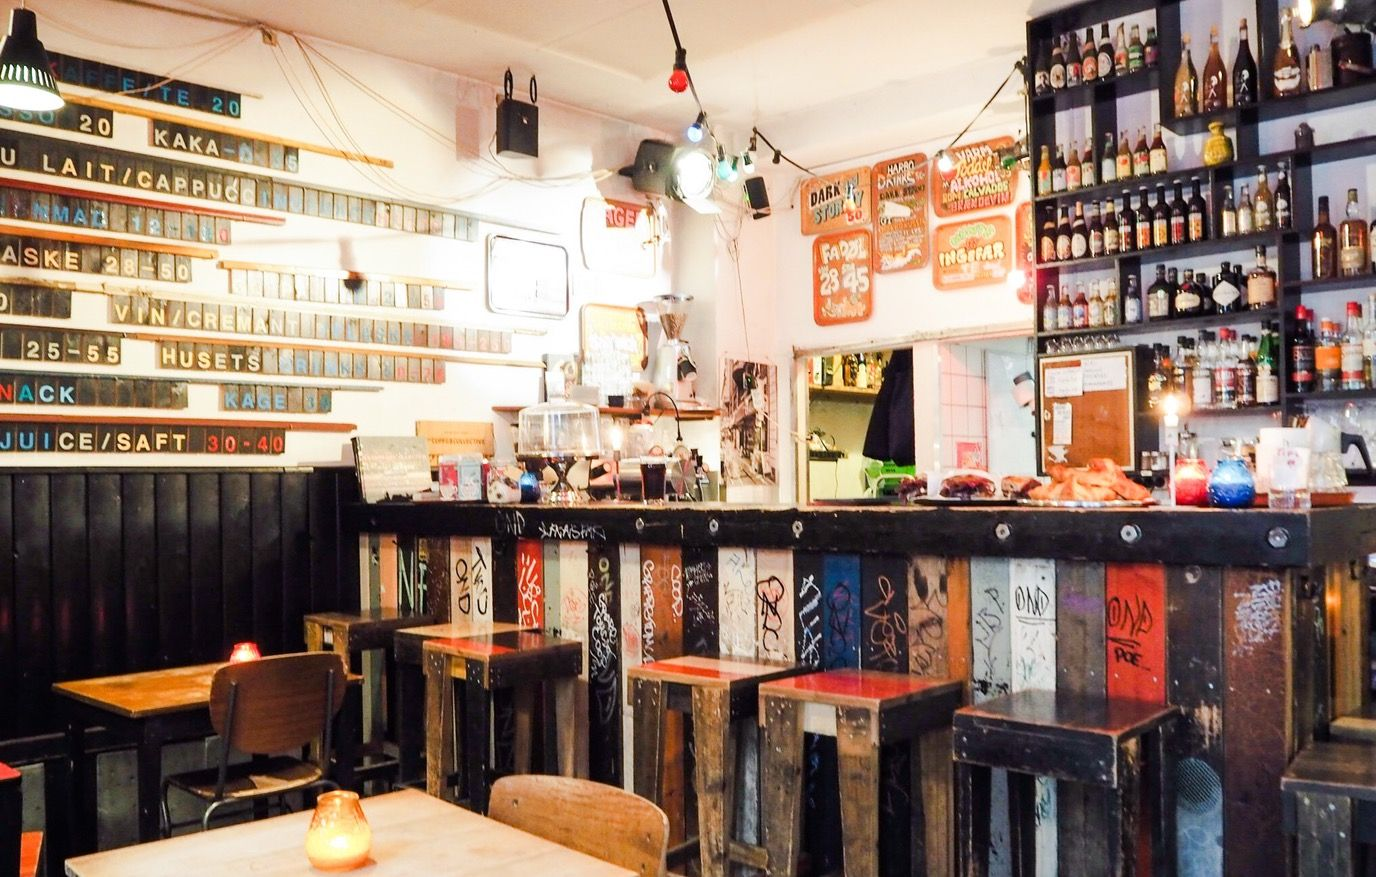 Step Into The Living Room Of Blgrdsgade Harbo Bar Welcomes You With Its No Fuss Diy Interior A Small Cosy Caf By Day And Thriving Night